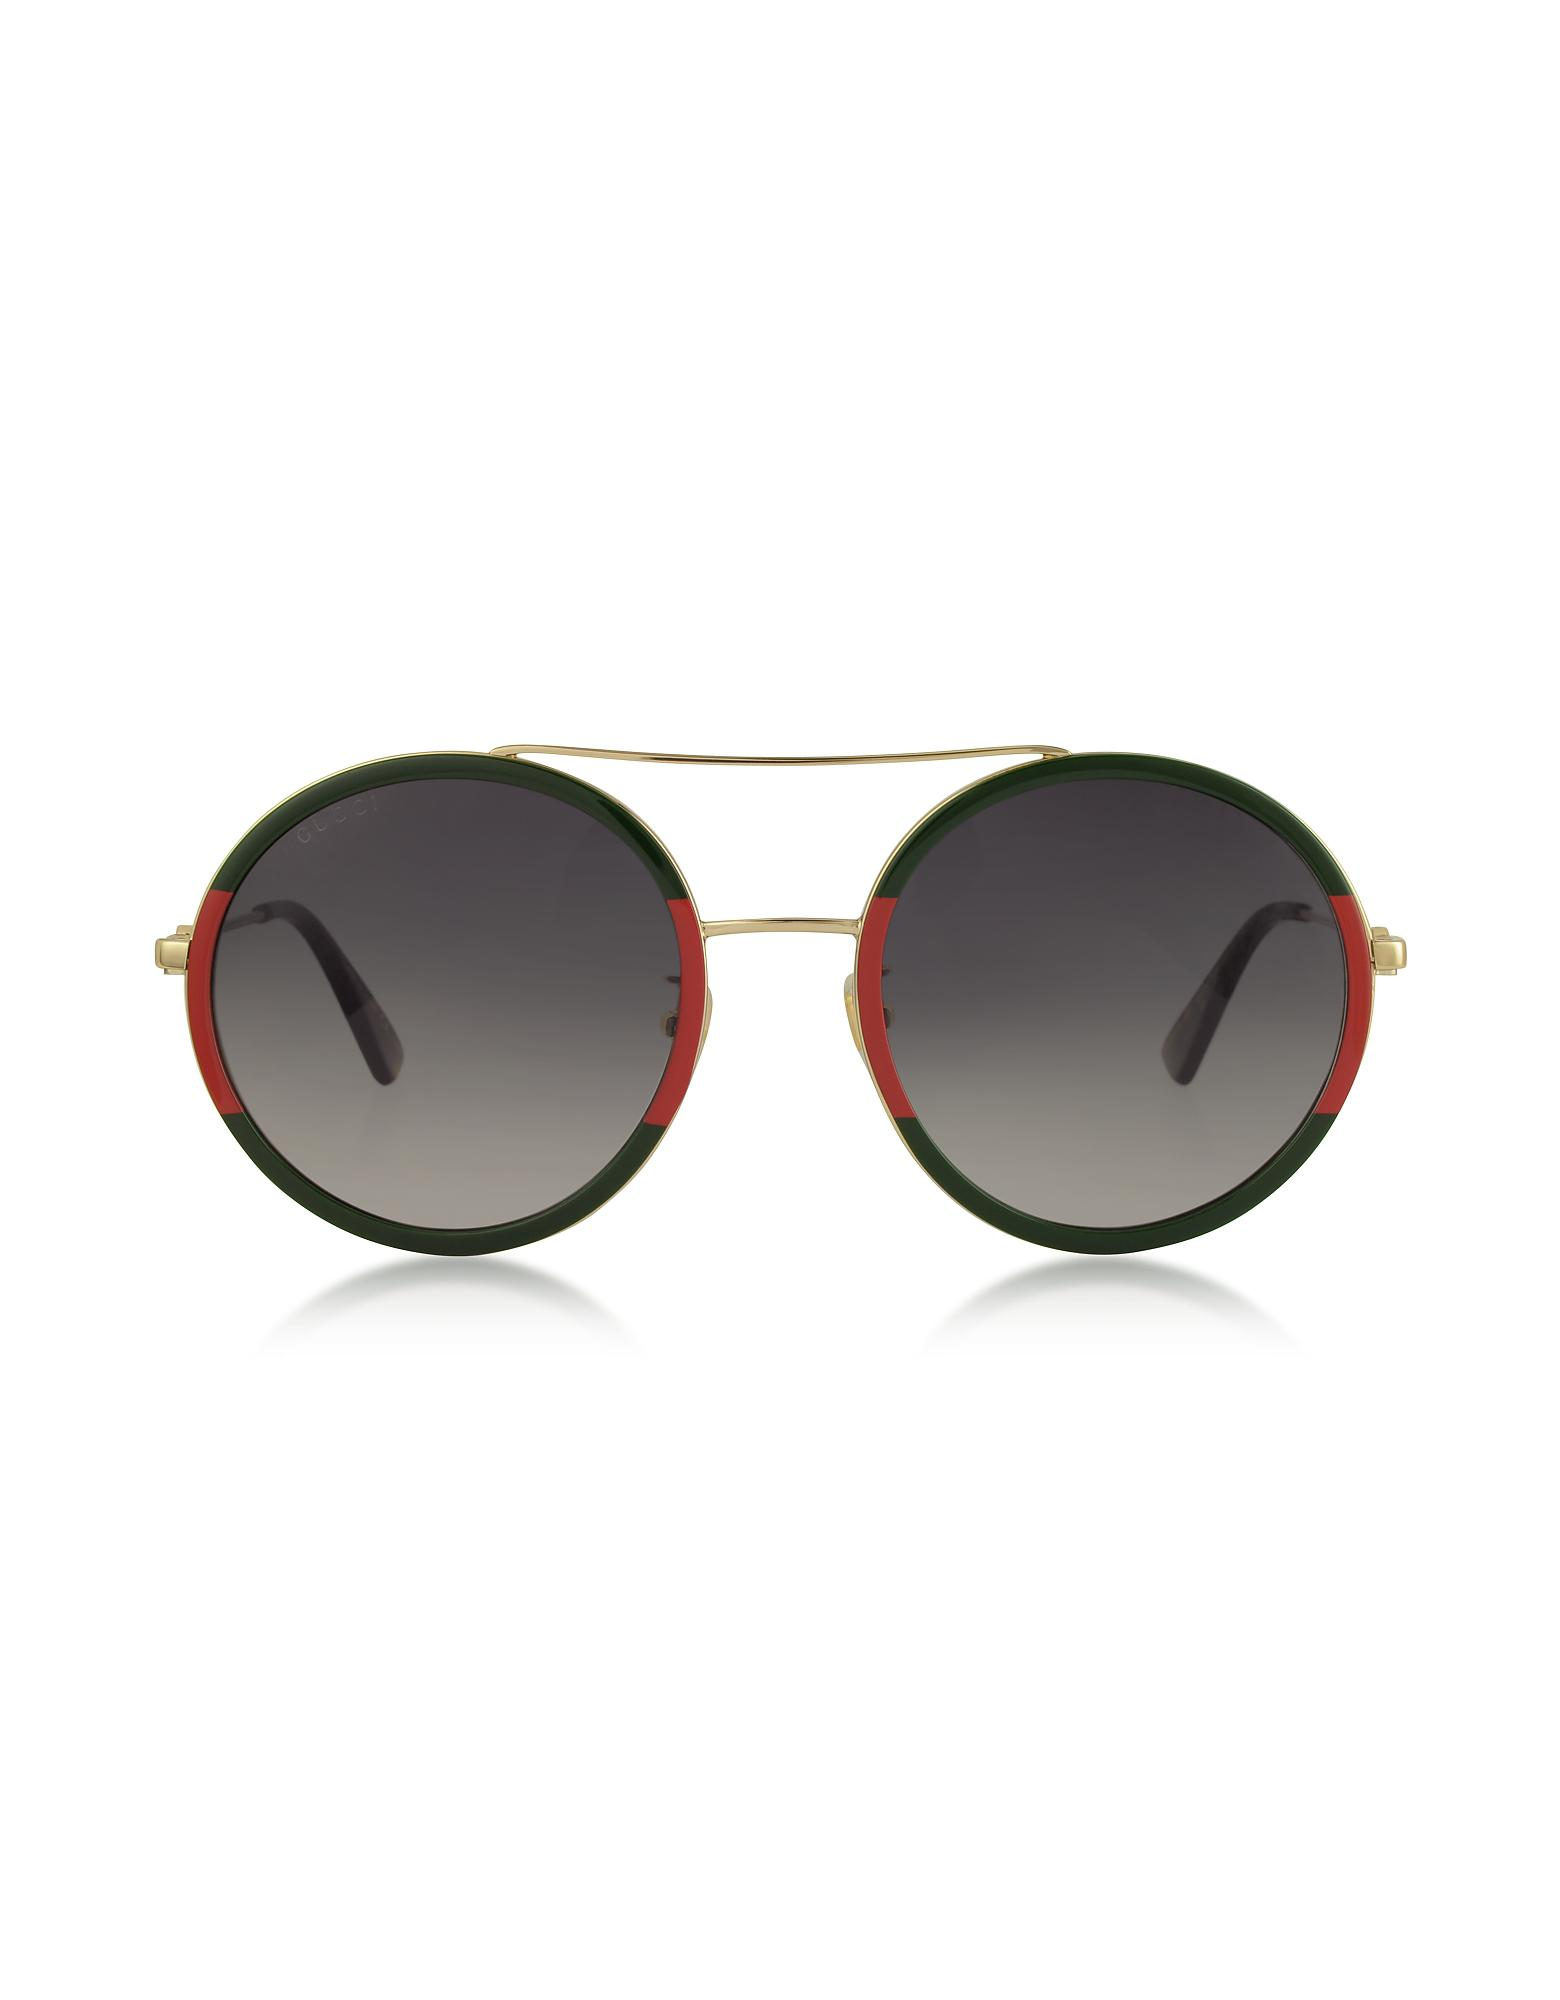 c69a3bbd999 Lyst - Gucci Round-frame Metal Sunglasses in Metallic